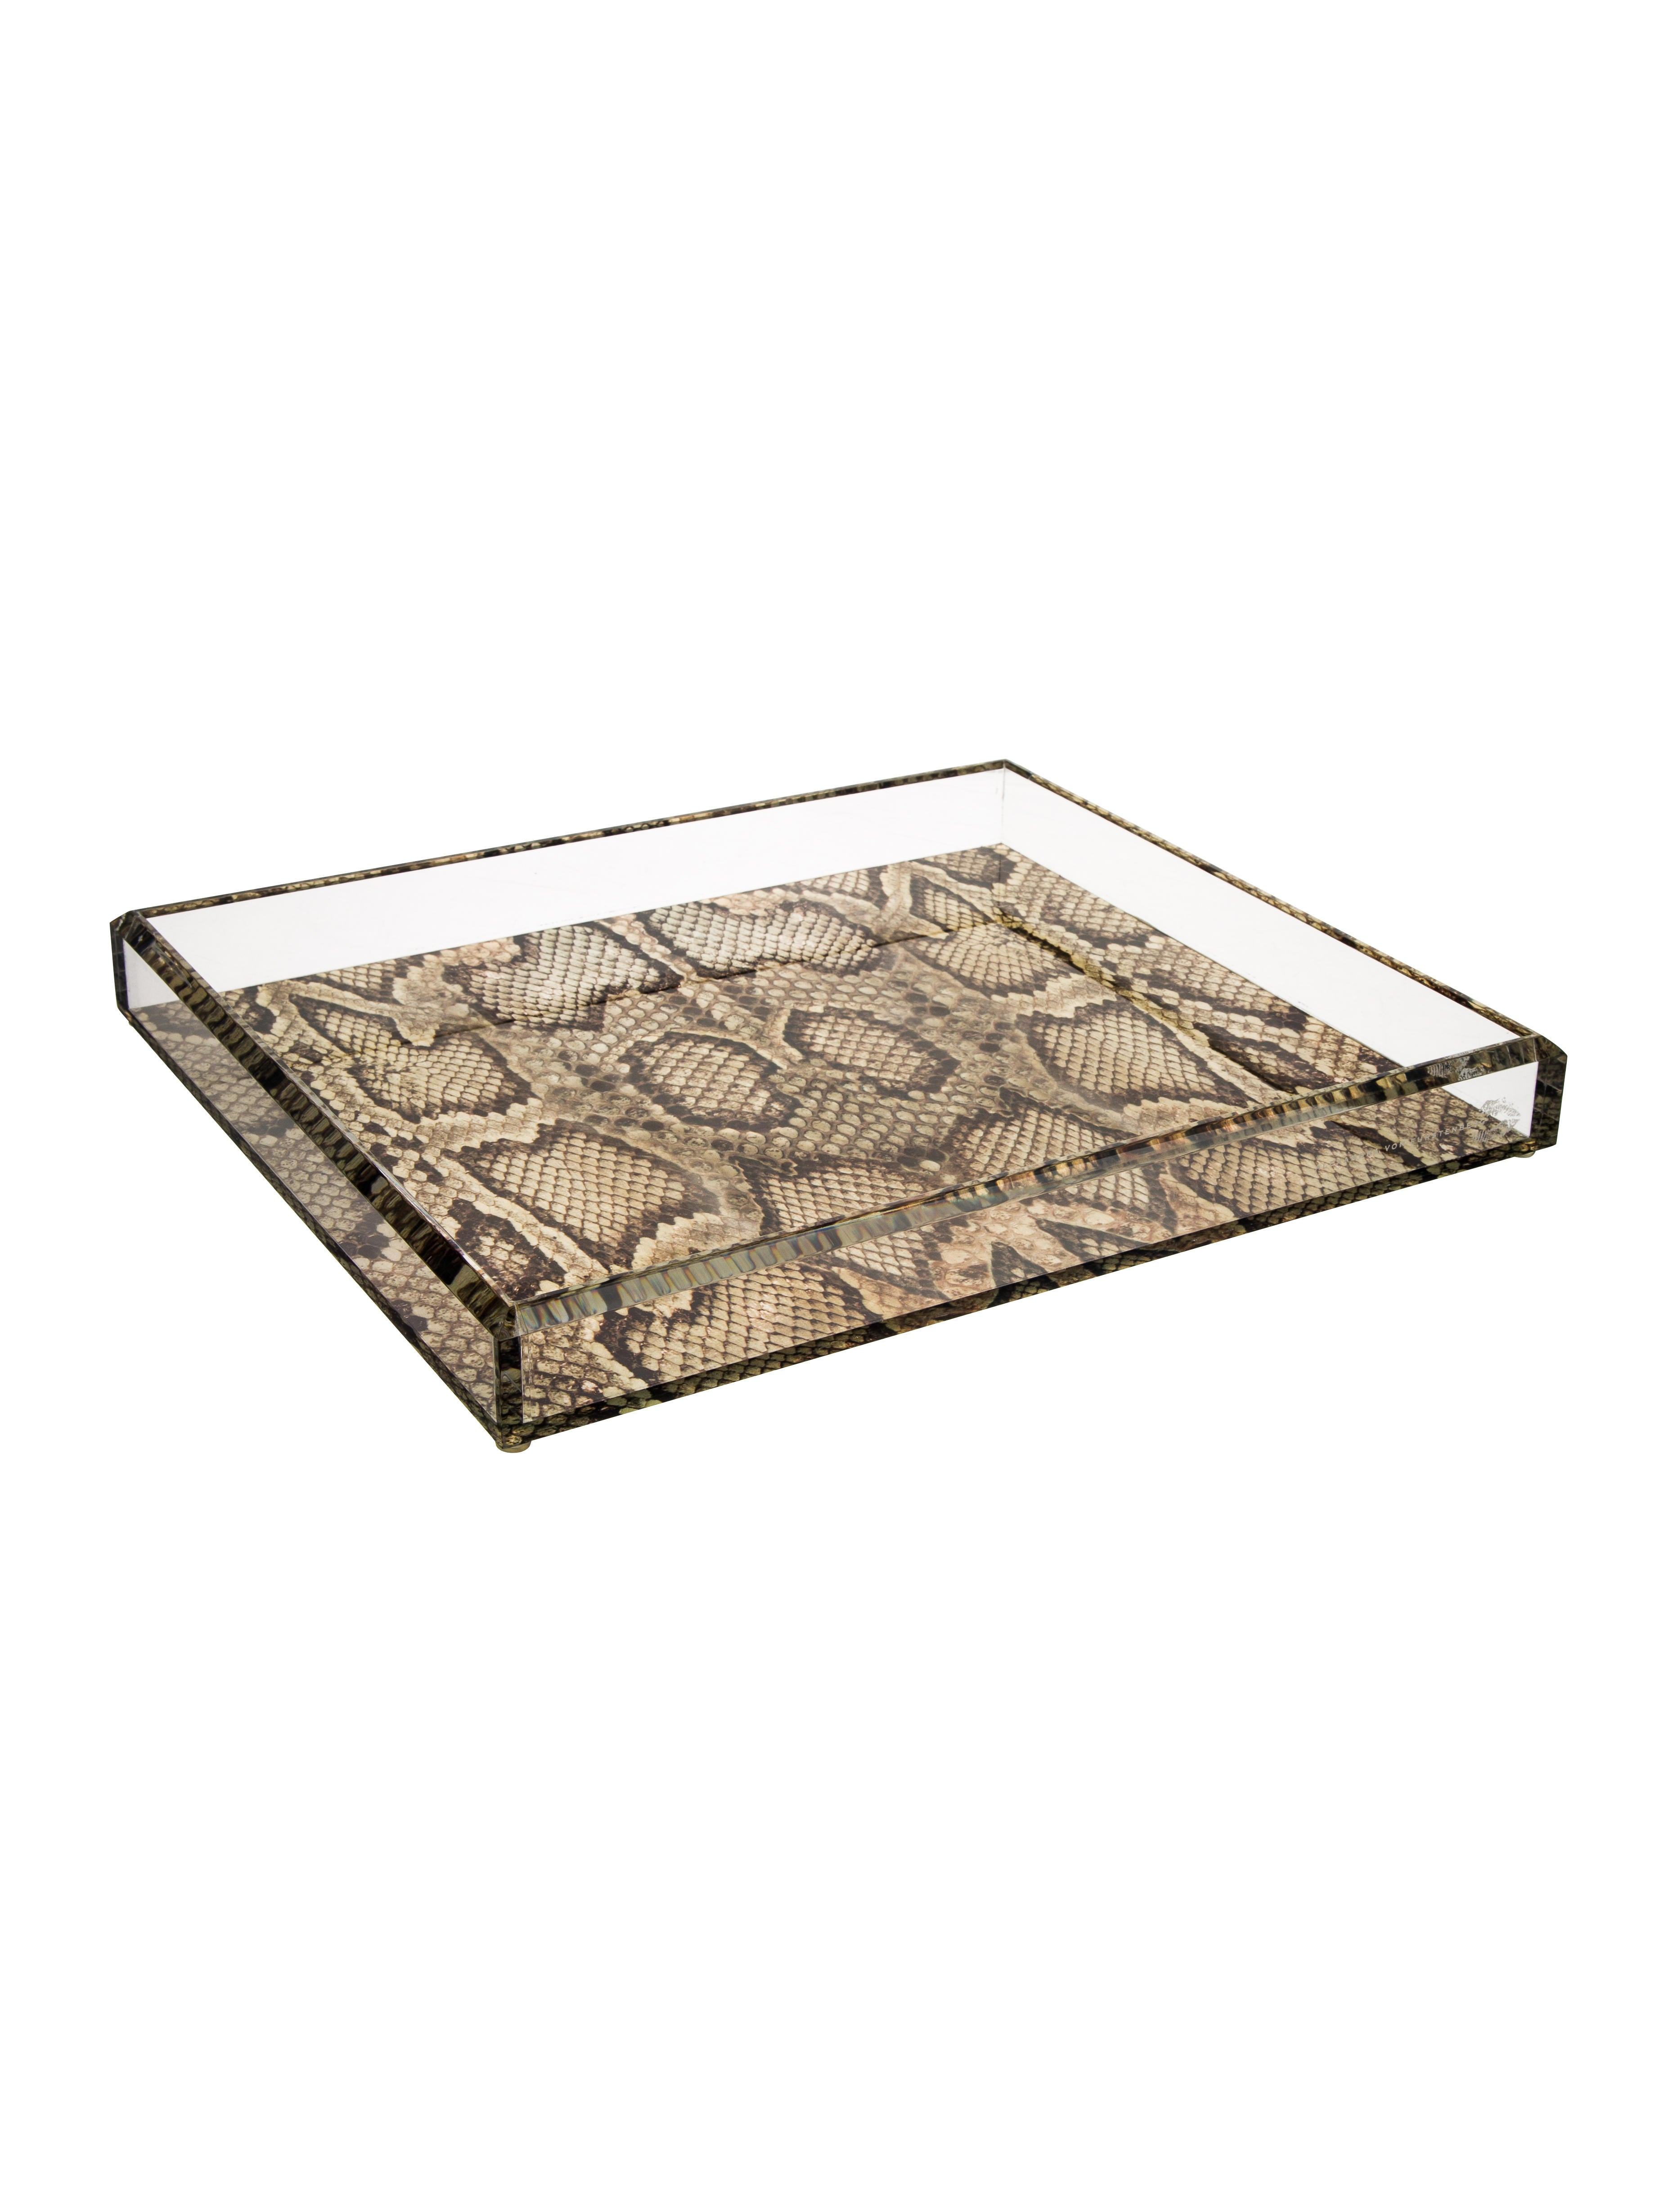 Soulmate snakeskin tray decor and accessories avf20071 for Aana decoration decorative tray